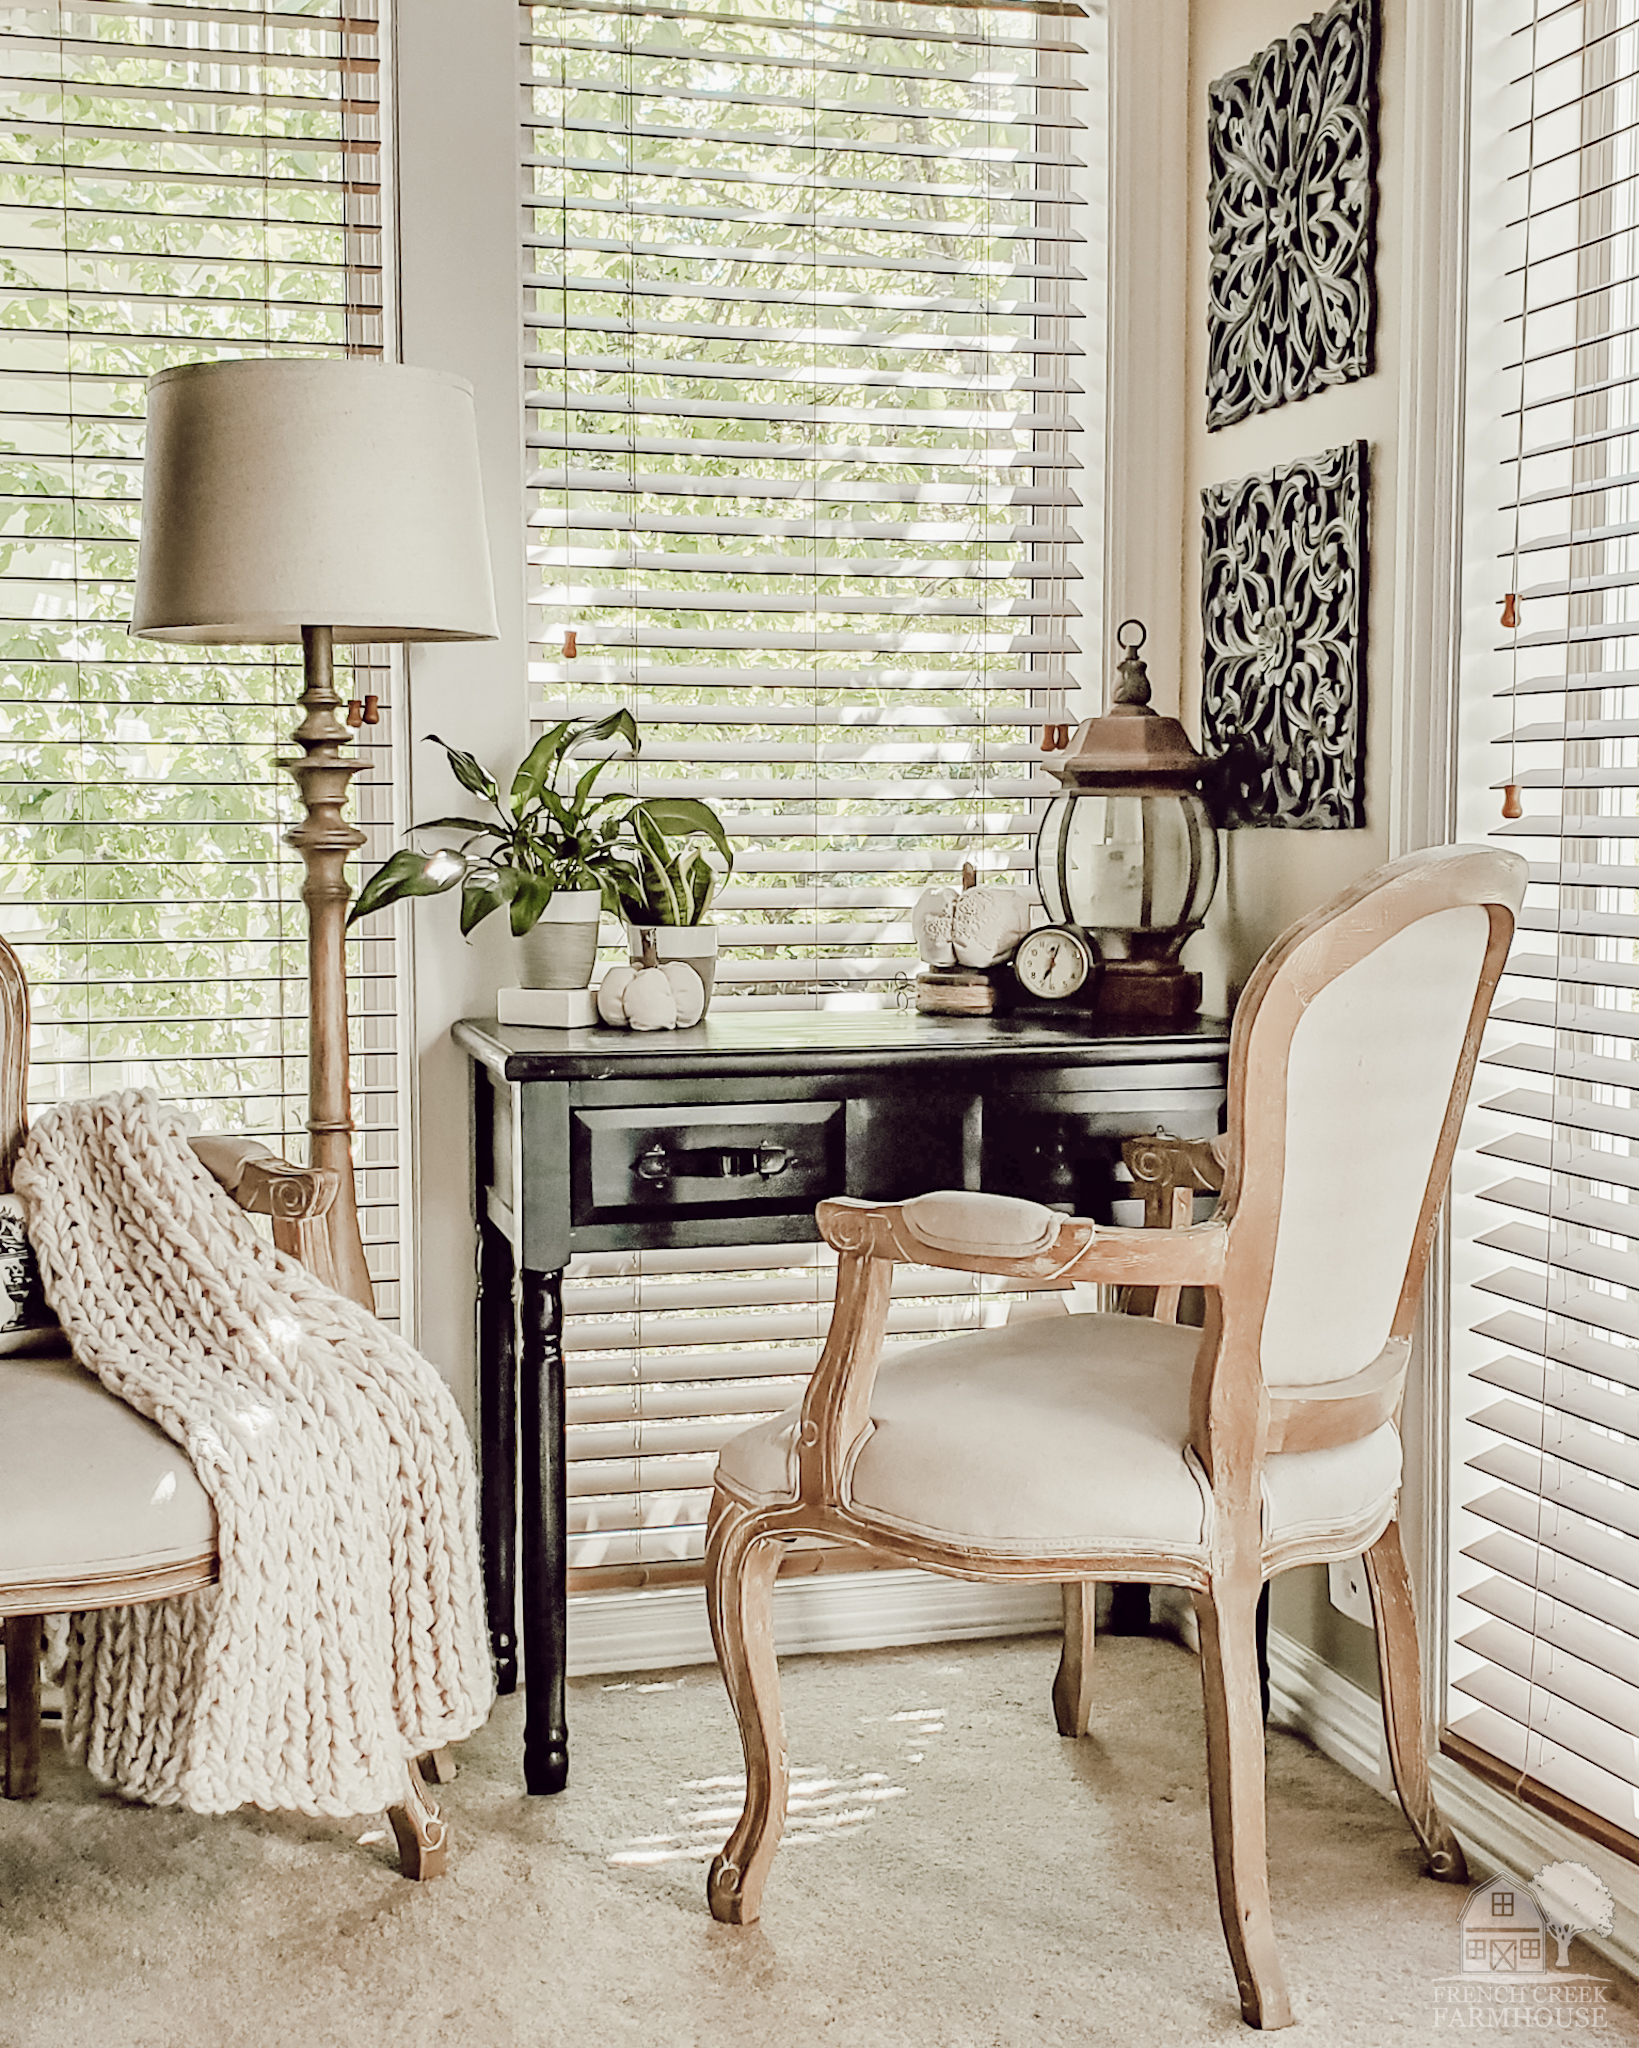 French country farmhouse writing desk decorated with pumpkins for fall